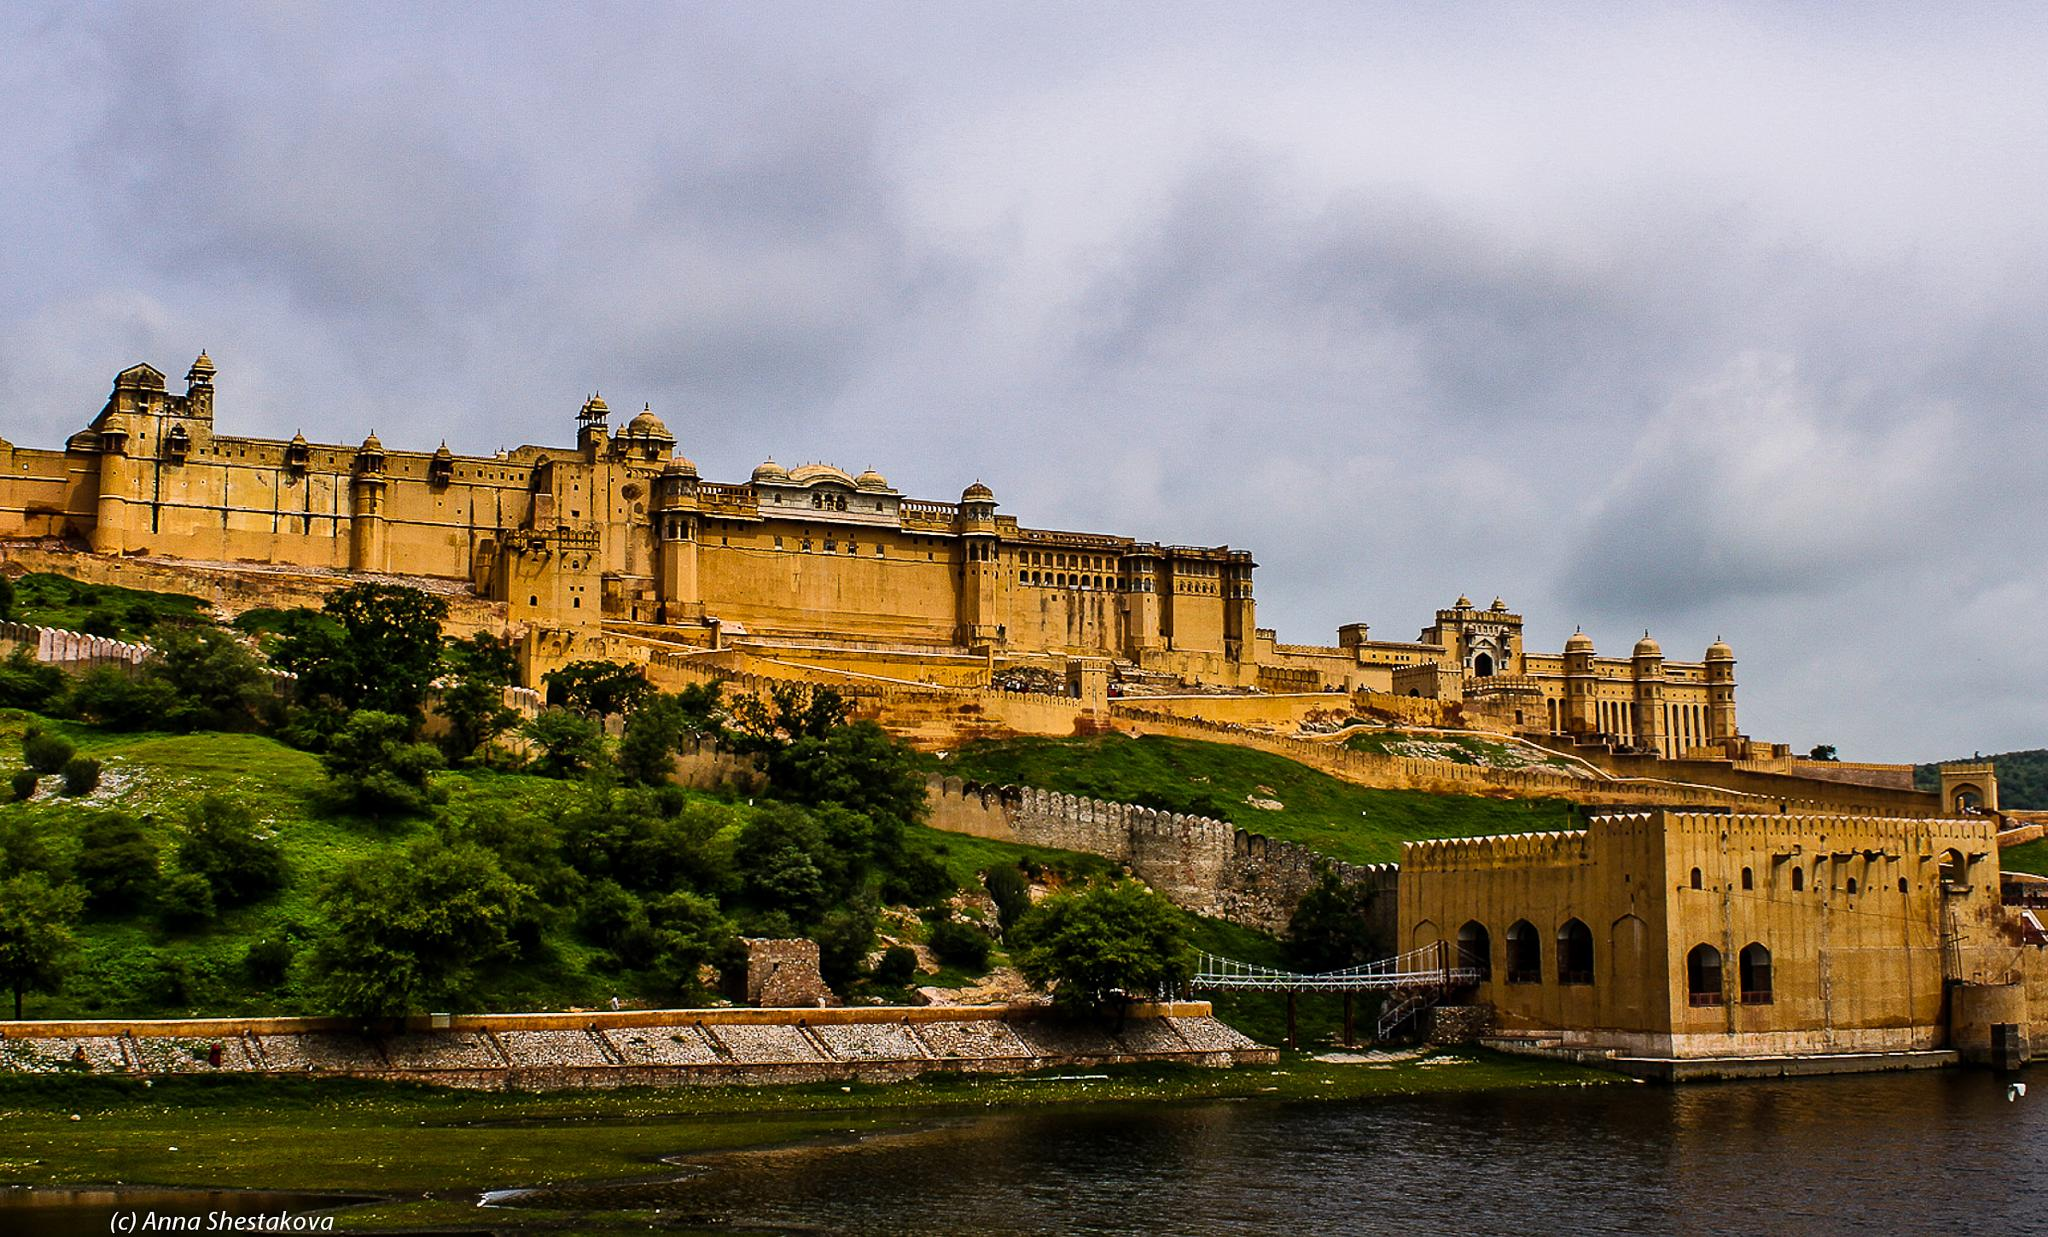 Amber Fort. by Anna Shestakova